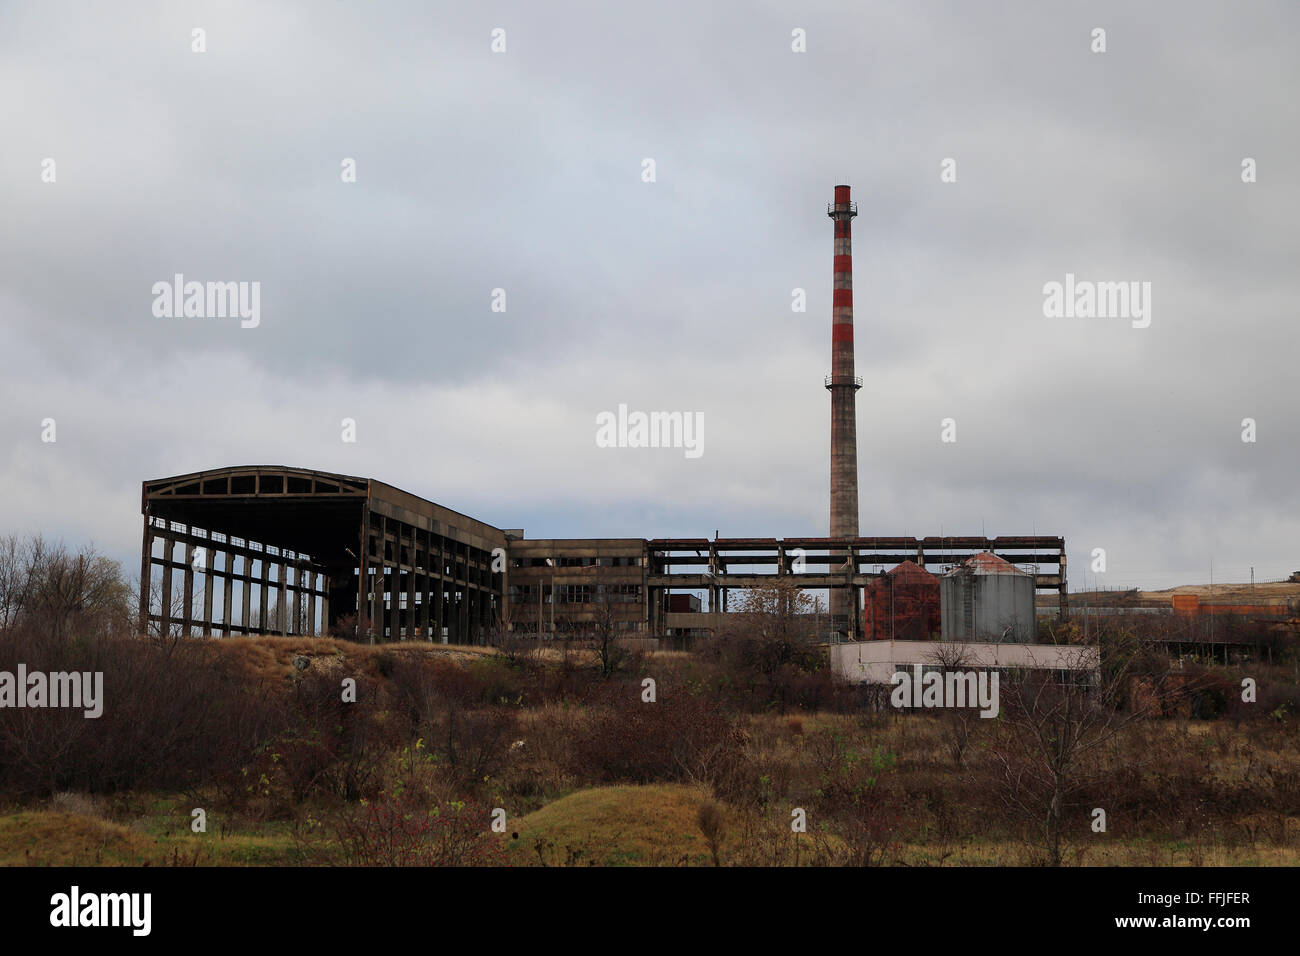 Deindustrialisation closed factory heavy industry, Shishmantsi, Plovdiv province, Bulgaria, eastern Europe - Stock Image